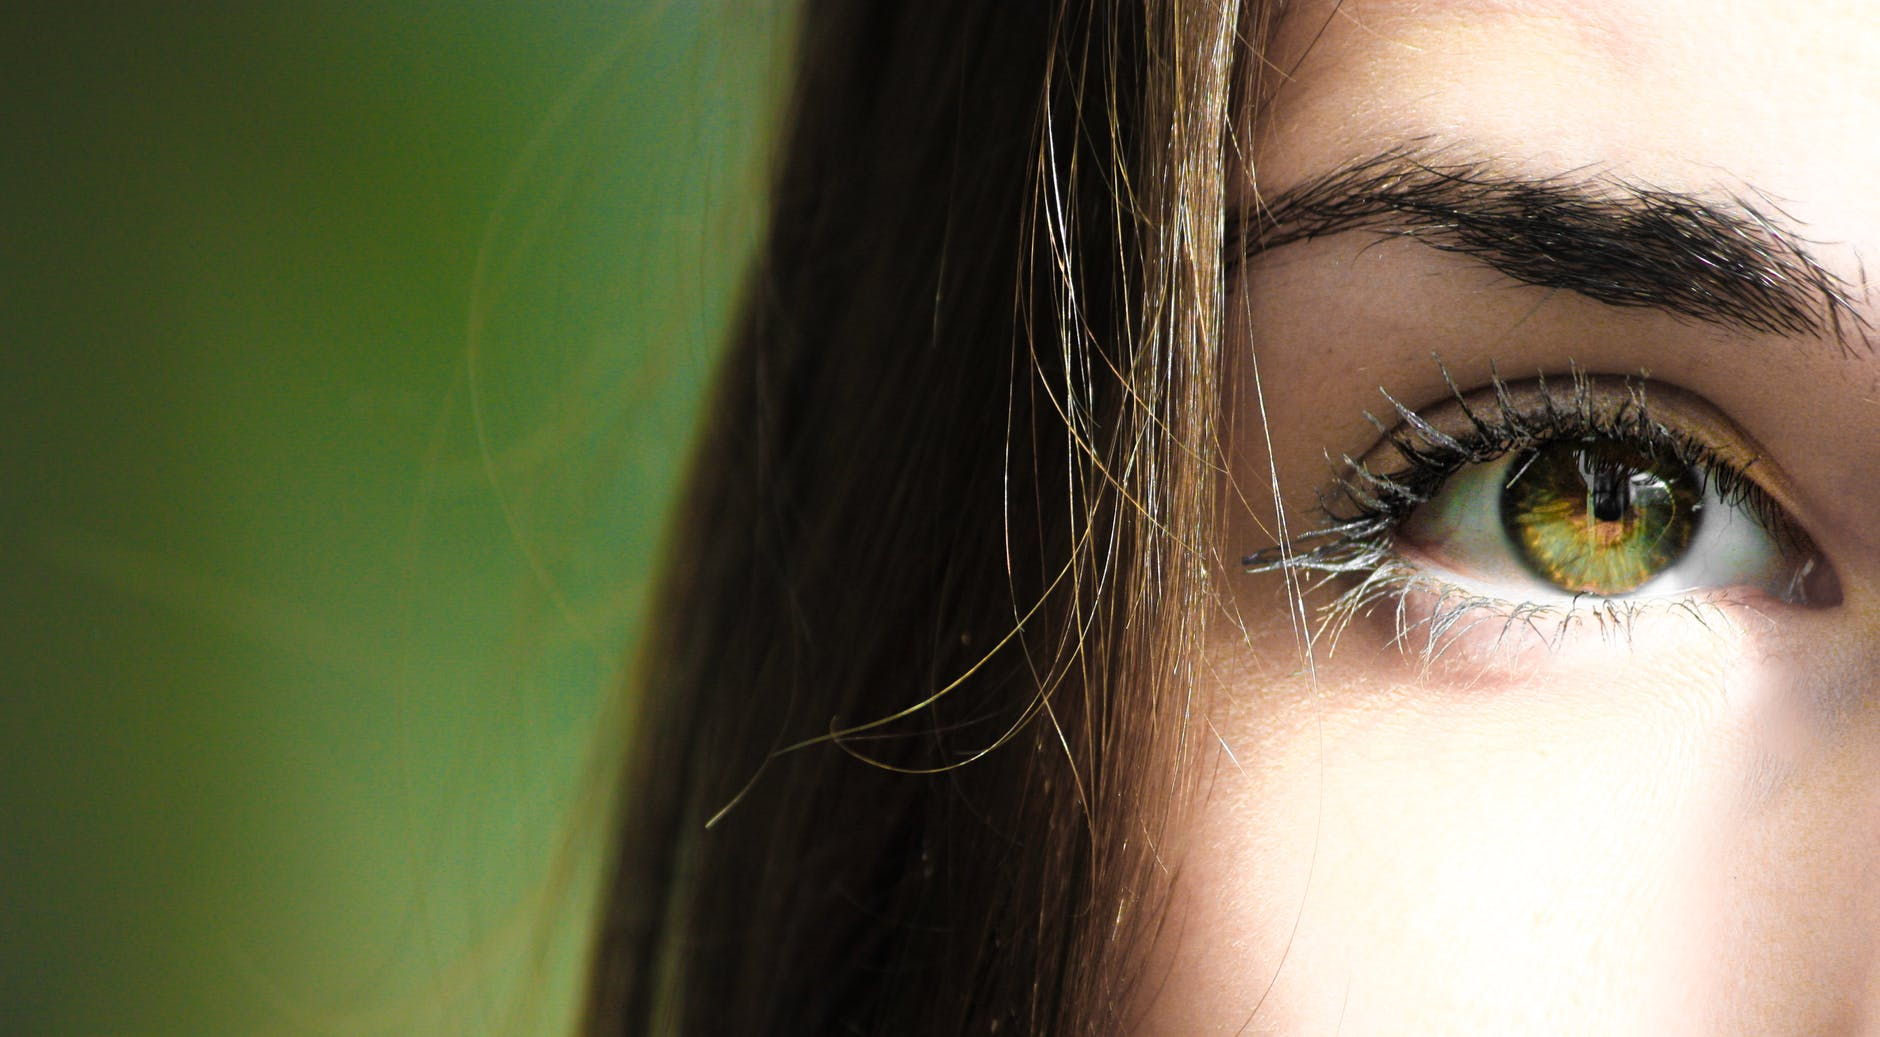 A close up shot of a woman with green eyes.